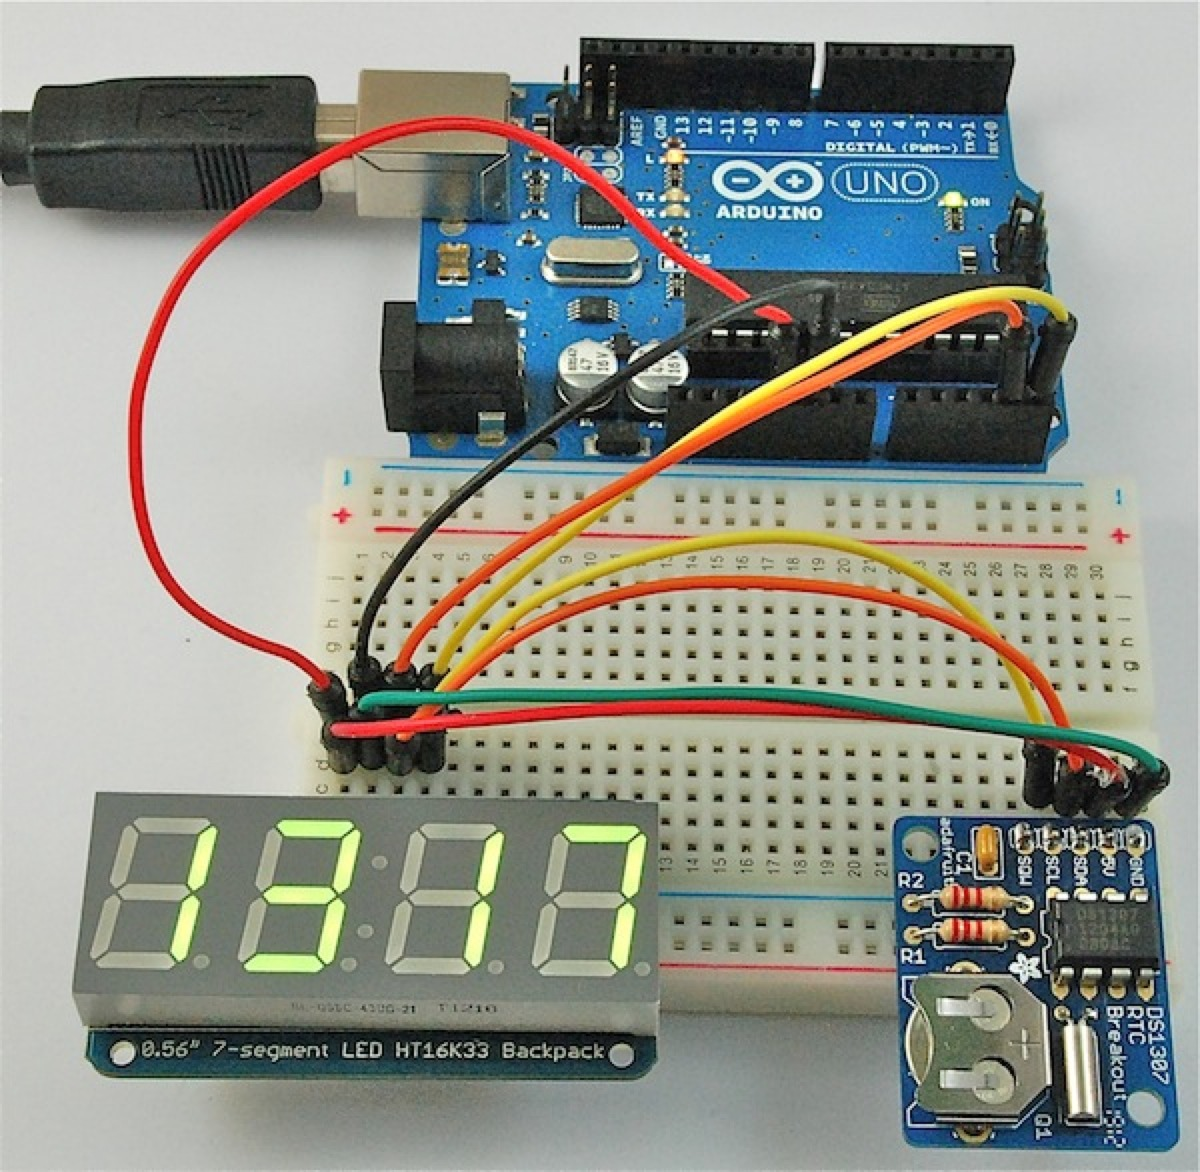 Timerh library in Arduino, sequence of works - Stack Overflow